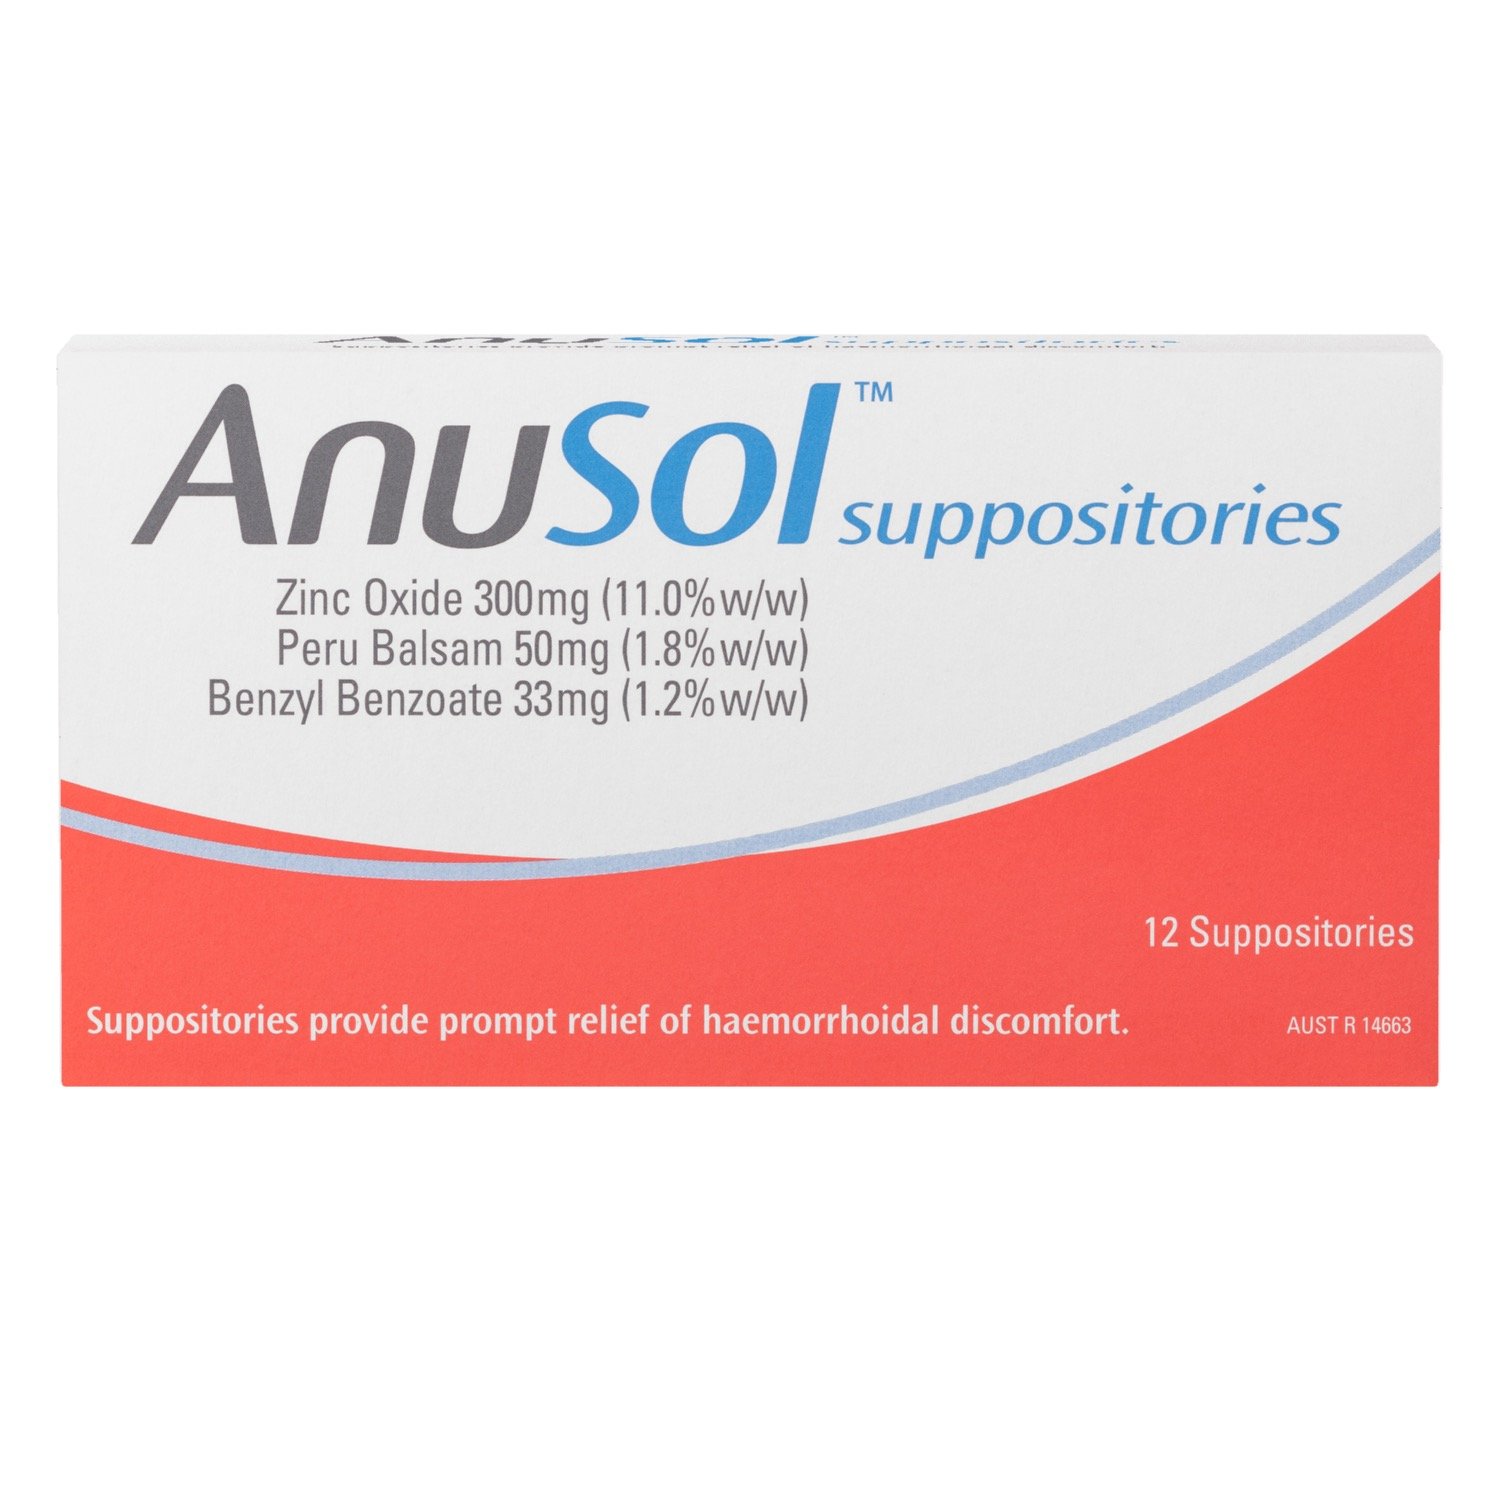 Thumbnail for Anusol Suppositories 12